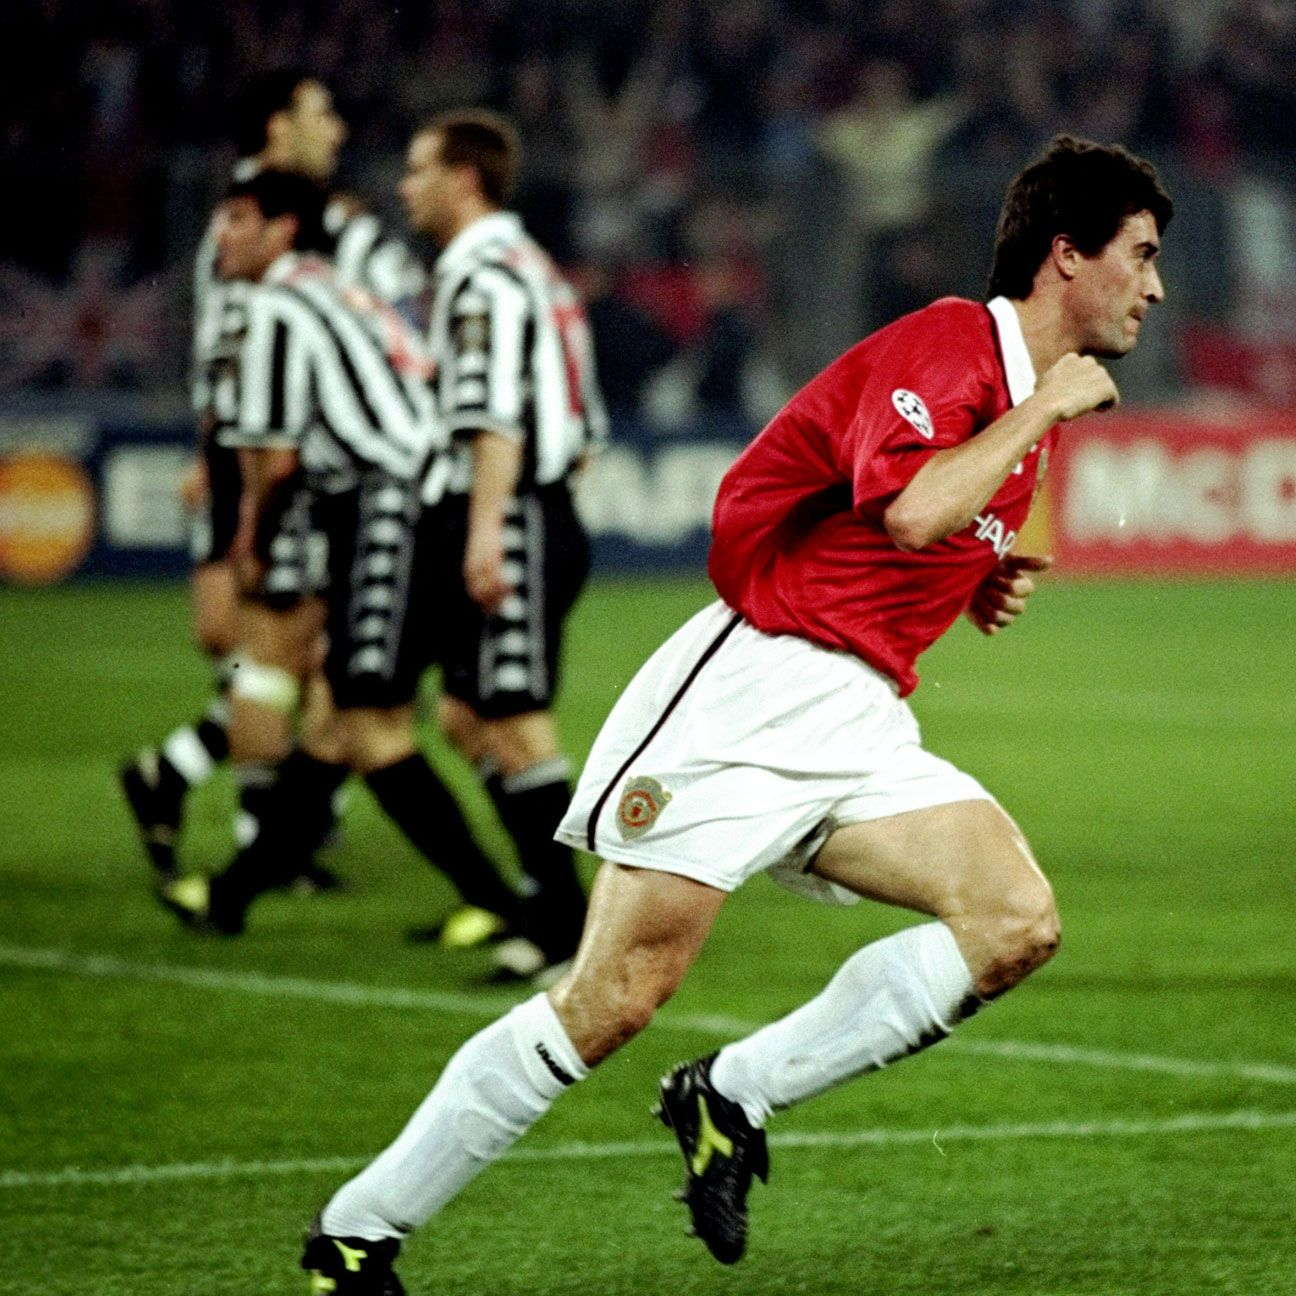 Roy Keane was the inspiration behind one of the finest wins in Man United history.